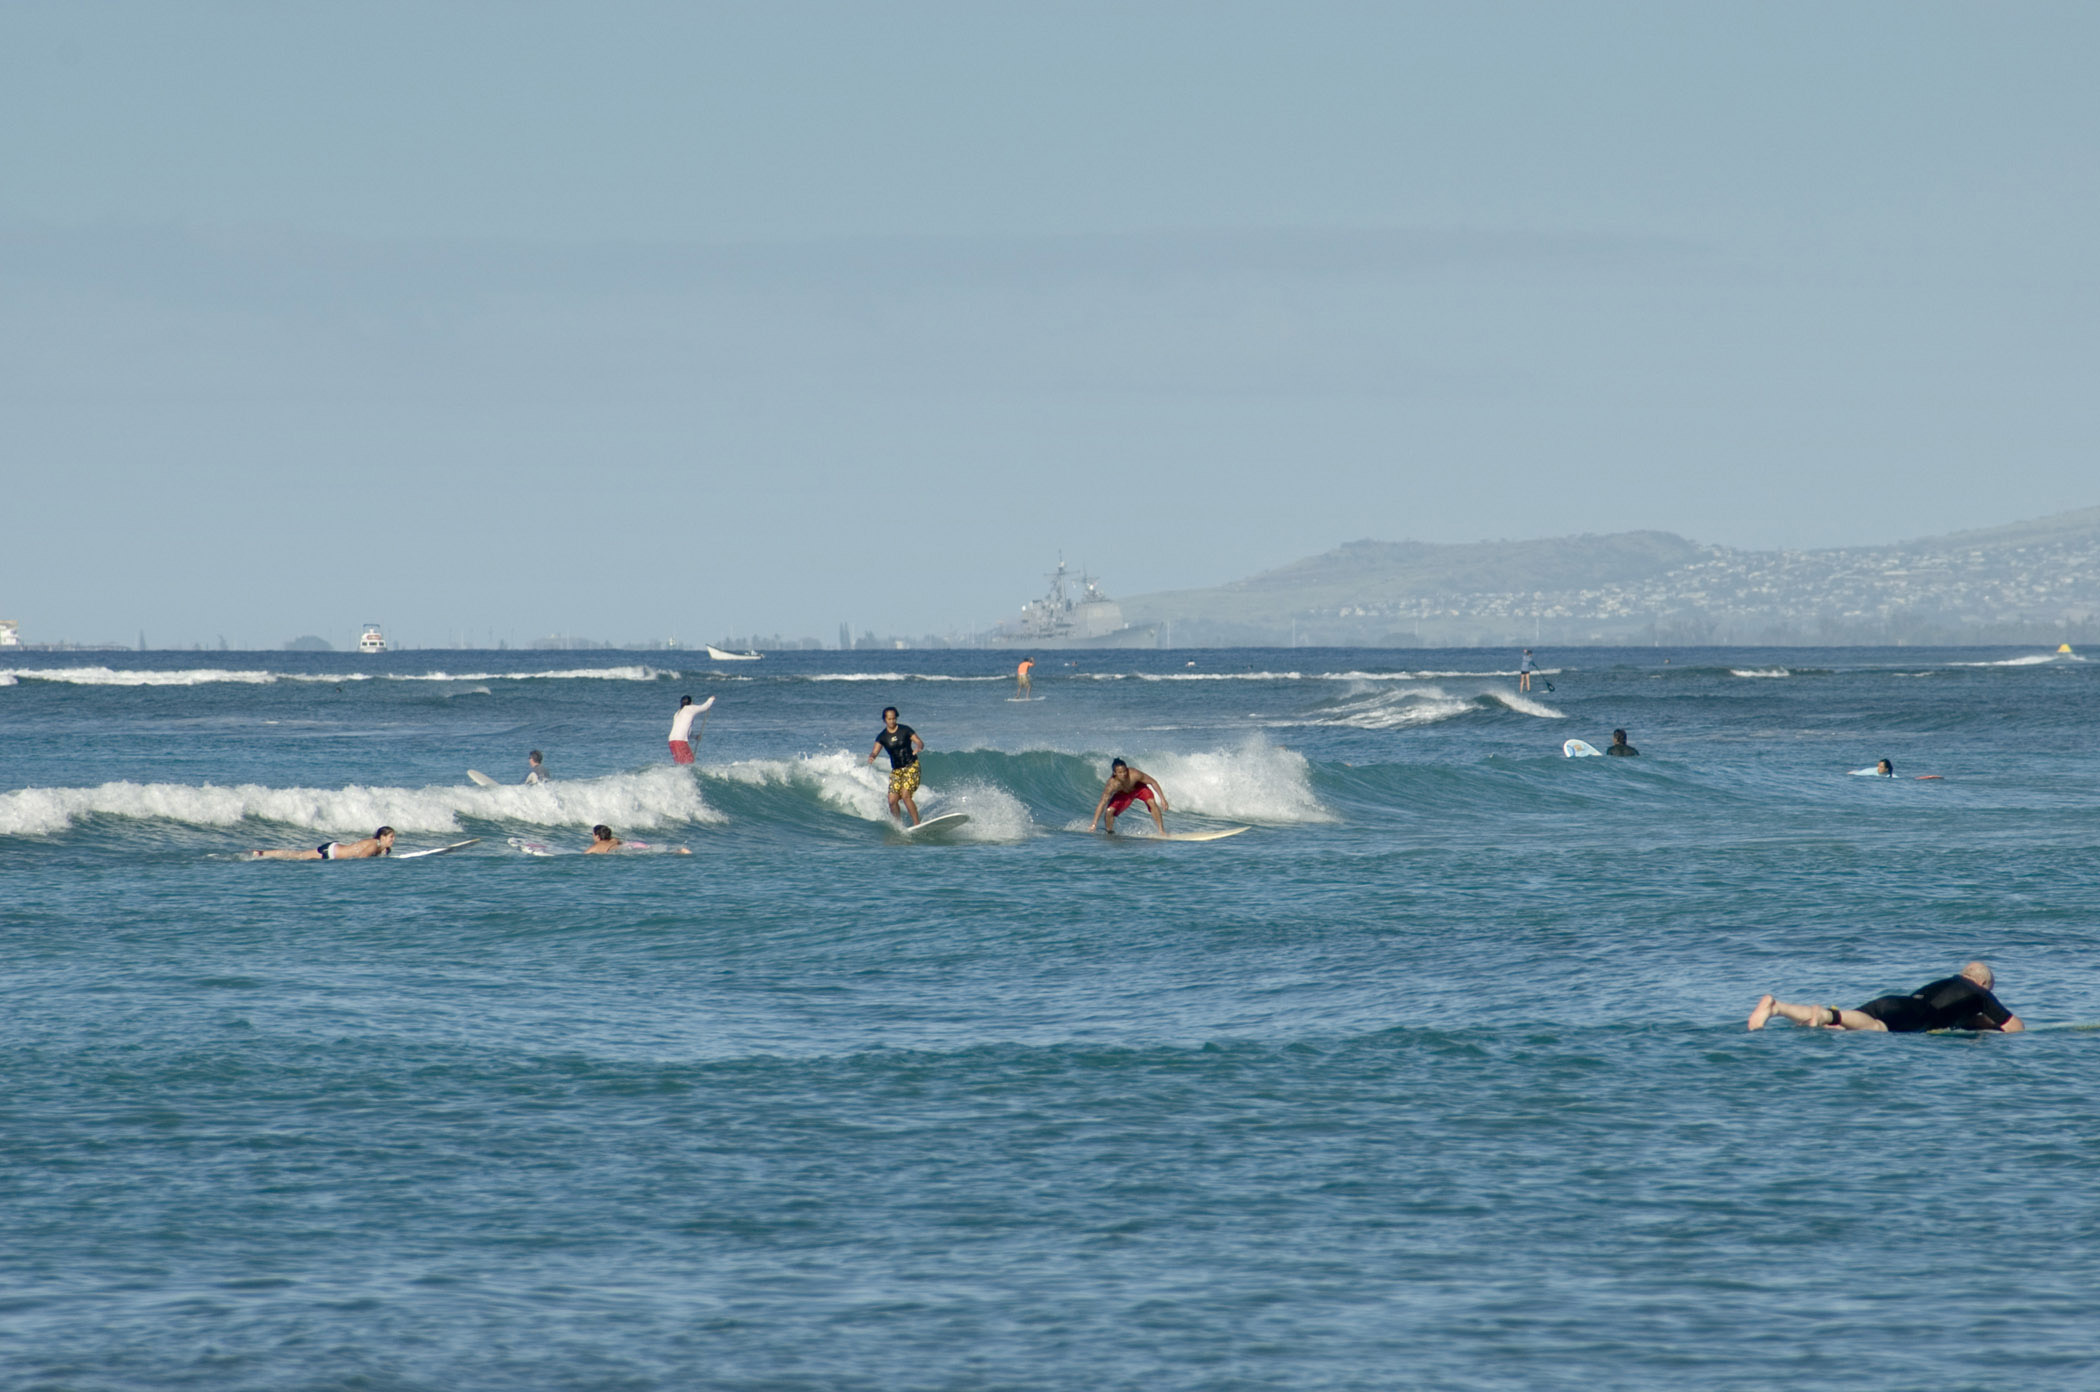 Few Tourists Surfing at Blue Water Waikiki Beach. Isolated Light Blue Gray Sky Background.